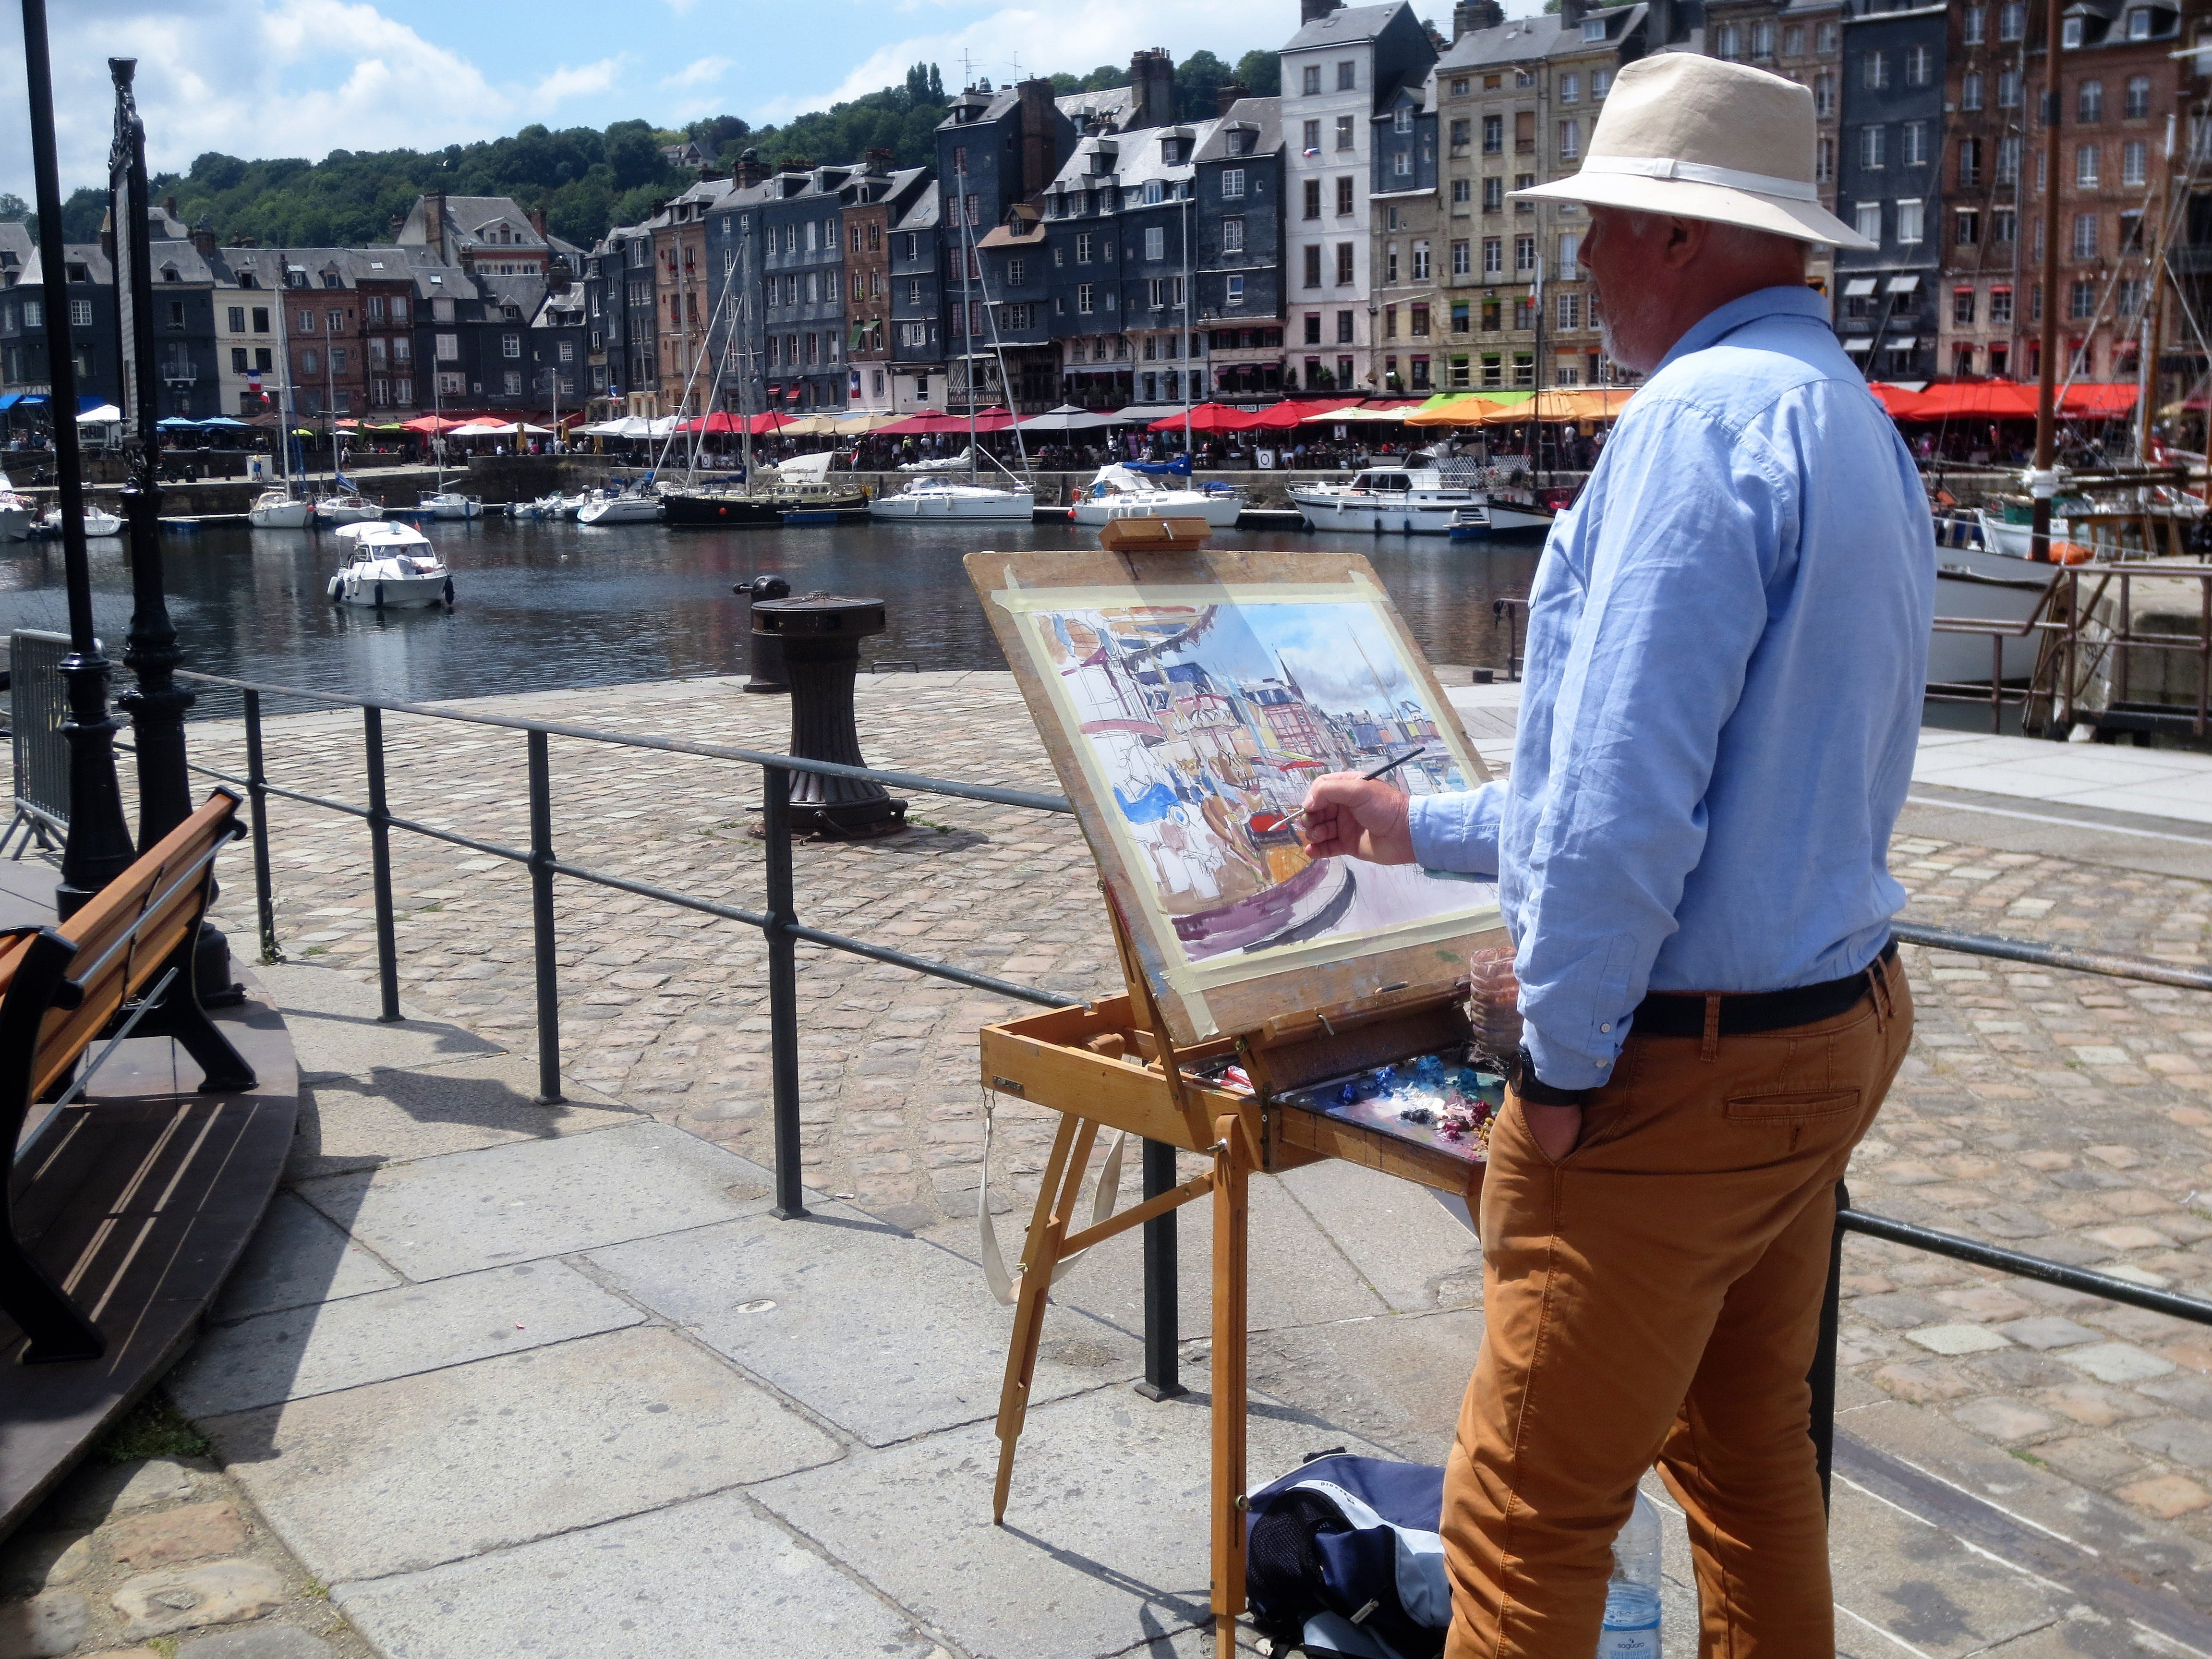 An artist paints the picturesque harbor in Honfleur, France, near where the Seine River empties into the English Channel.